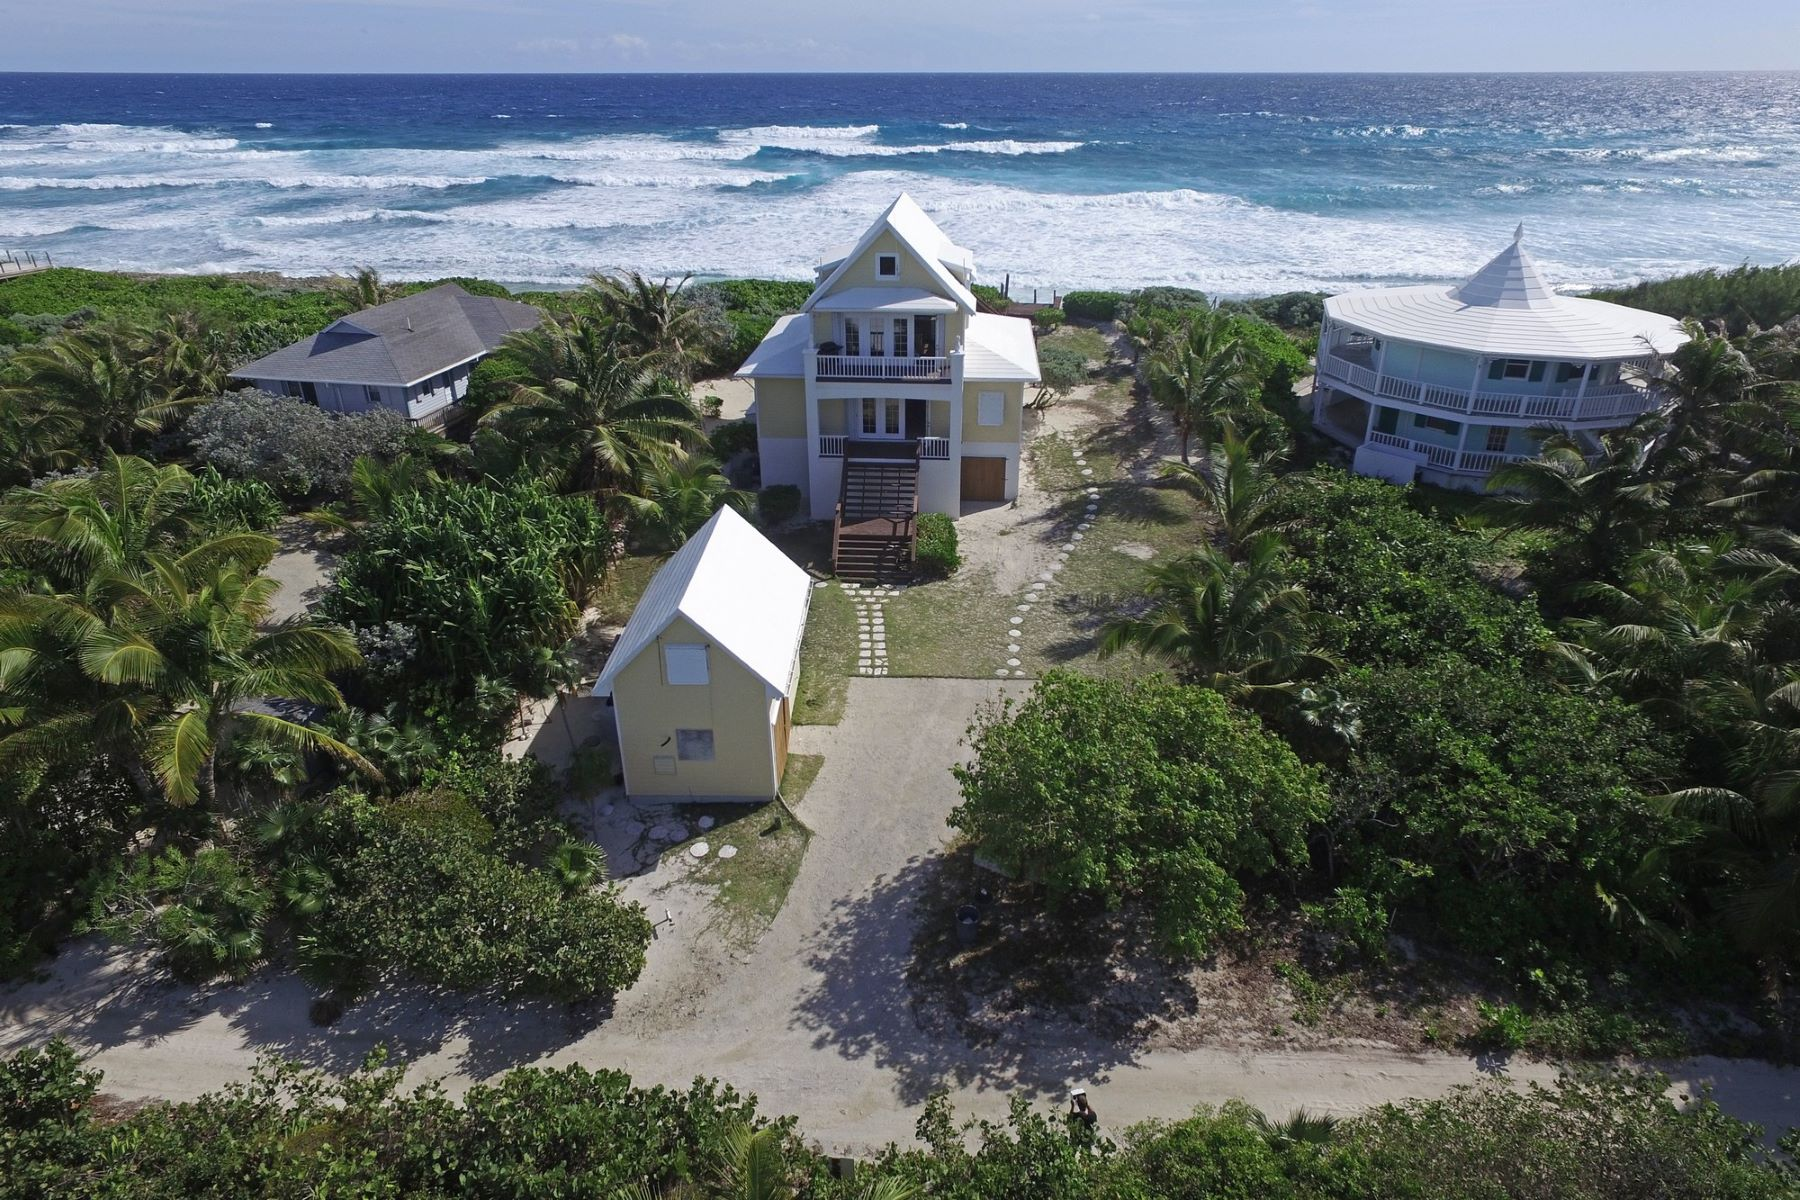 Single Family Home for Sale at Abaco Pineapple Beach Elbow Cay Hope Town, Abaco Bahamas